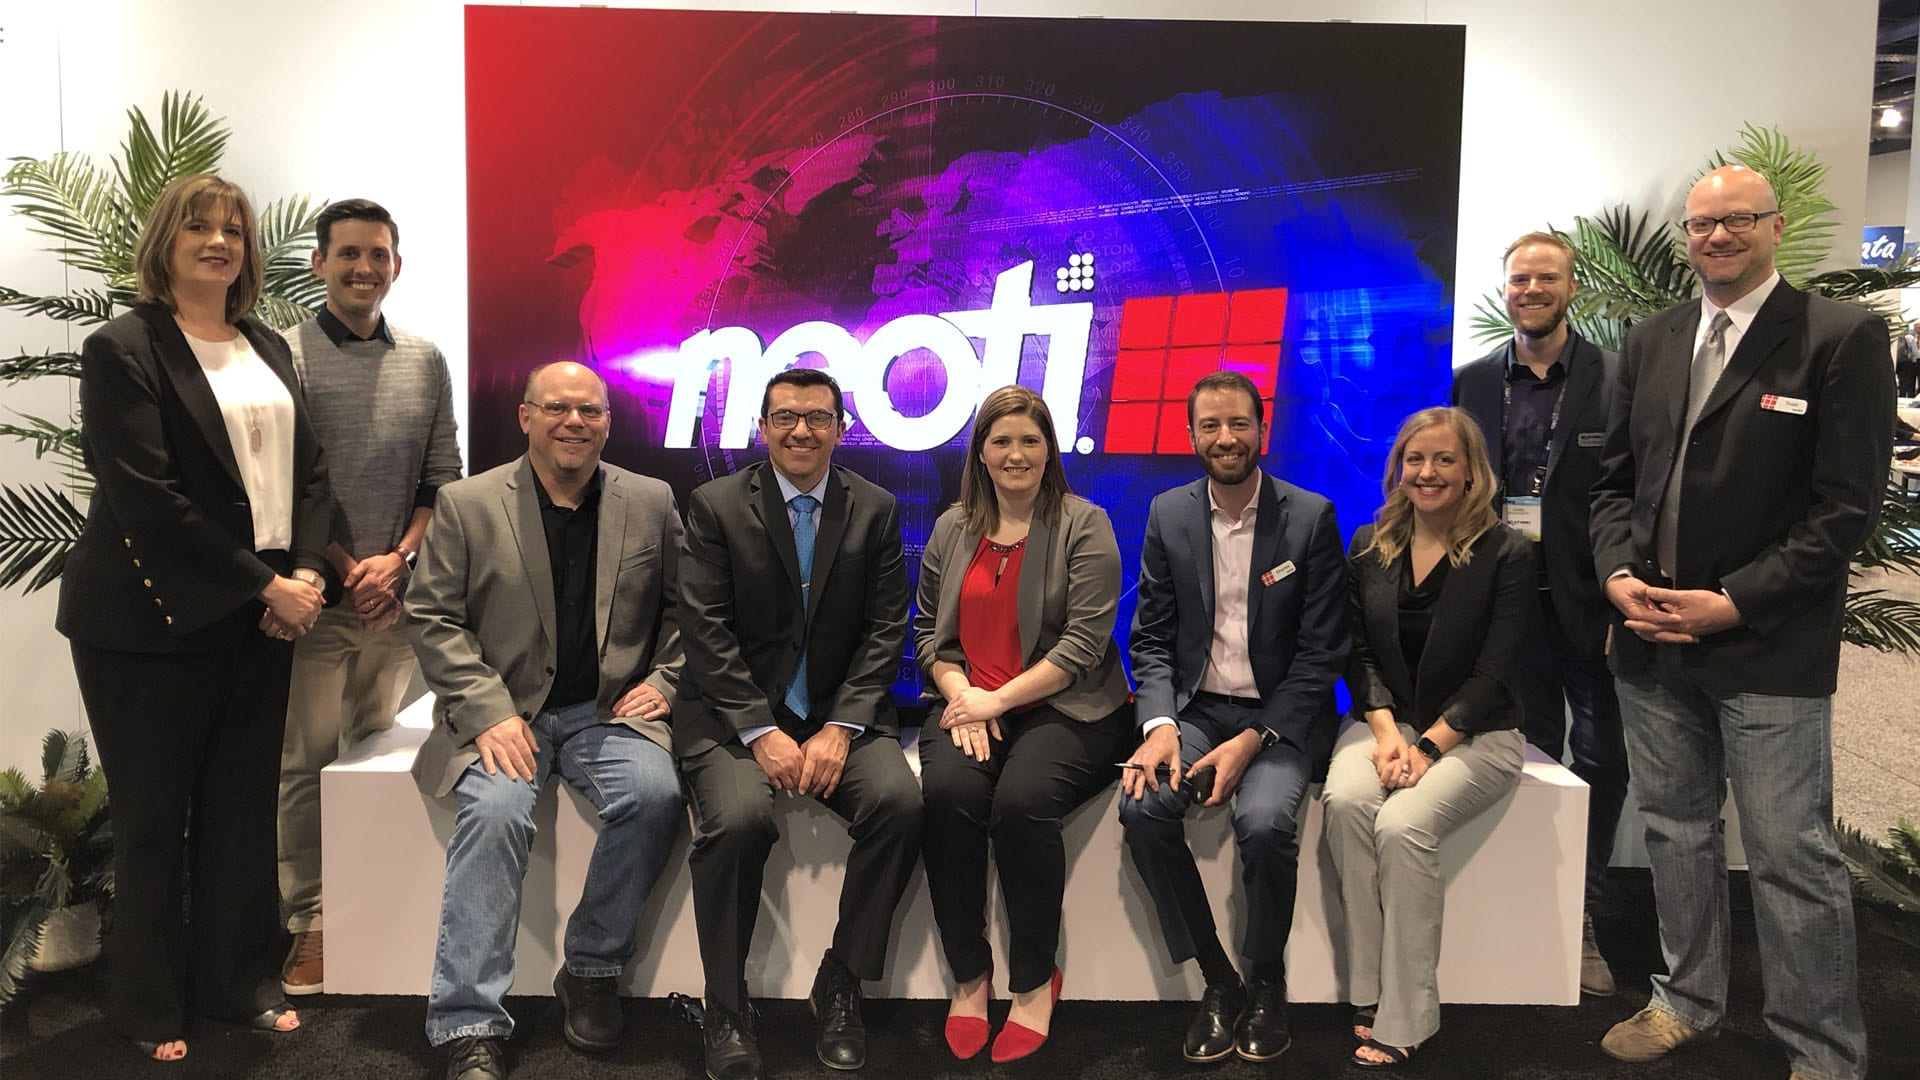 Neoti staff at NAB Las Vegas 2019